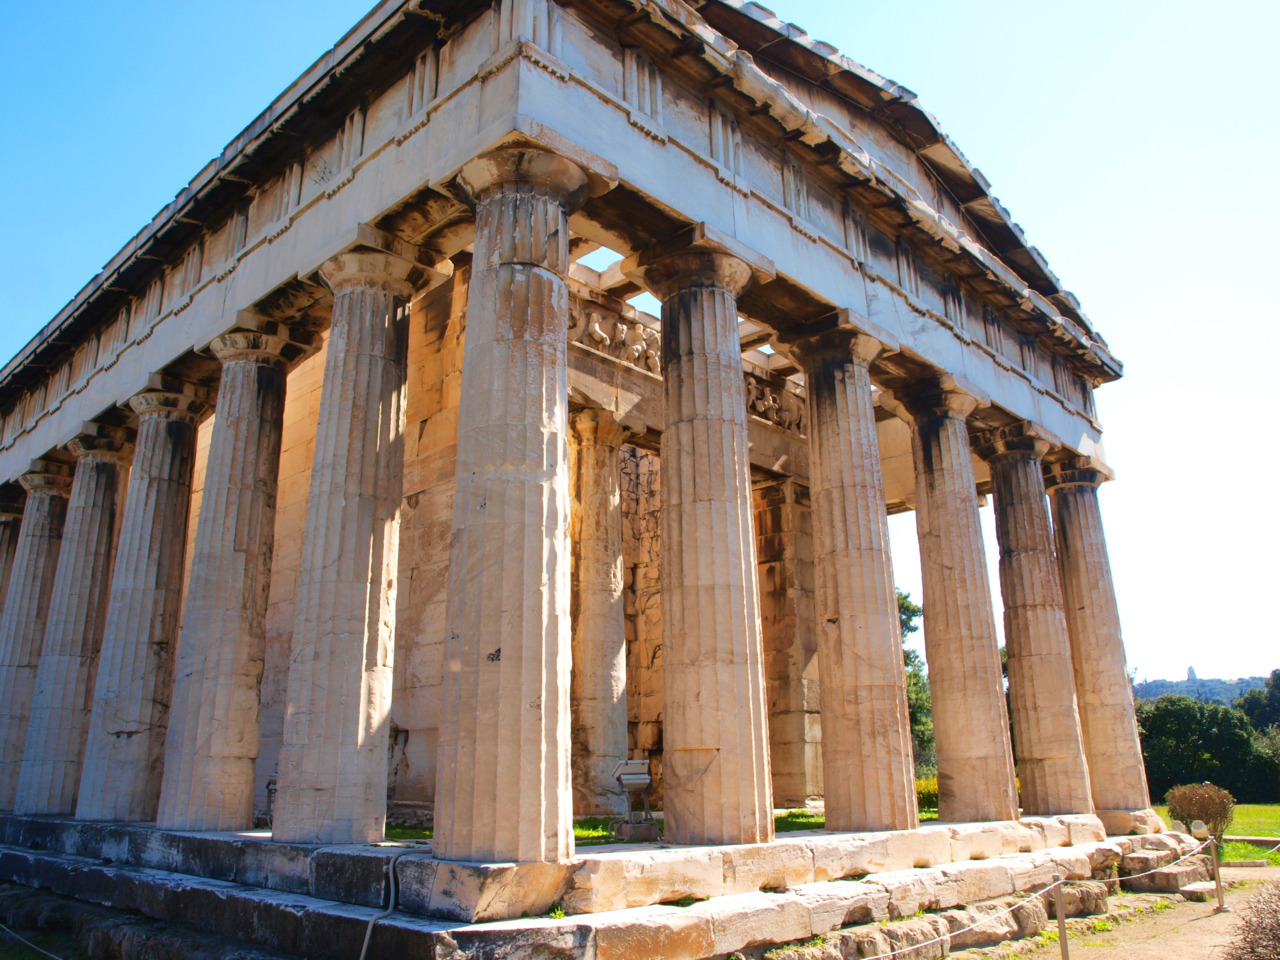 The Temple of Hephaestus is the best preserved temple of Greece. It sits in the corner of the Ancient Agora, or marketplace. The rest of the site is in ruins, but the temple is almost perfectly assembled, inside and out. It was cool to see this and to imagine what it must have looked like when everything (including the Parthenon) was still standing. It still blows my mind that I'm looking at a building that people walked in and used 2500 years ago.